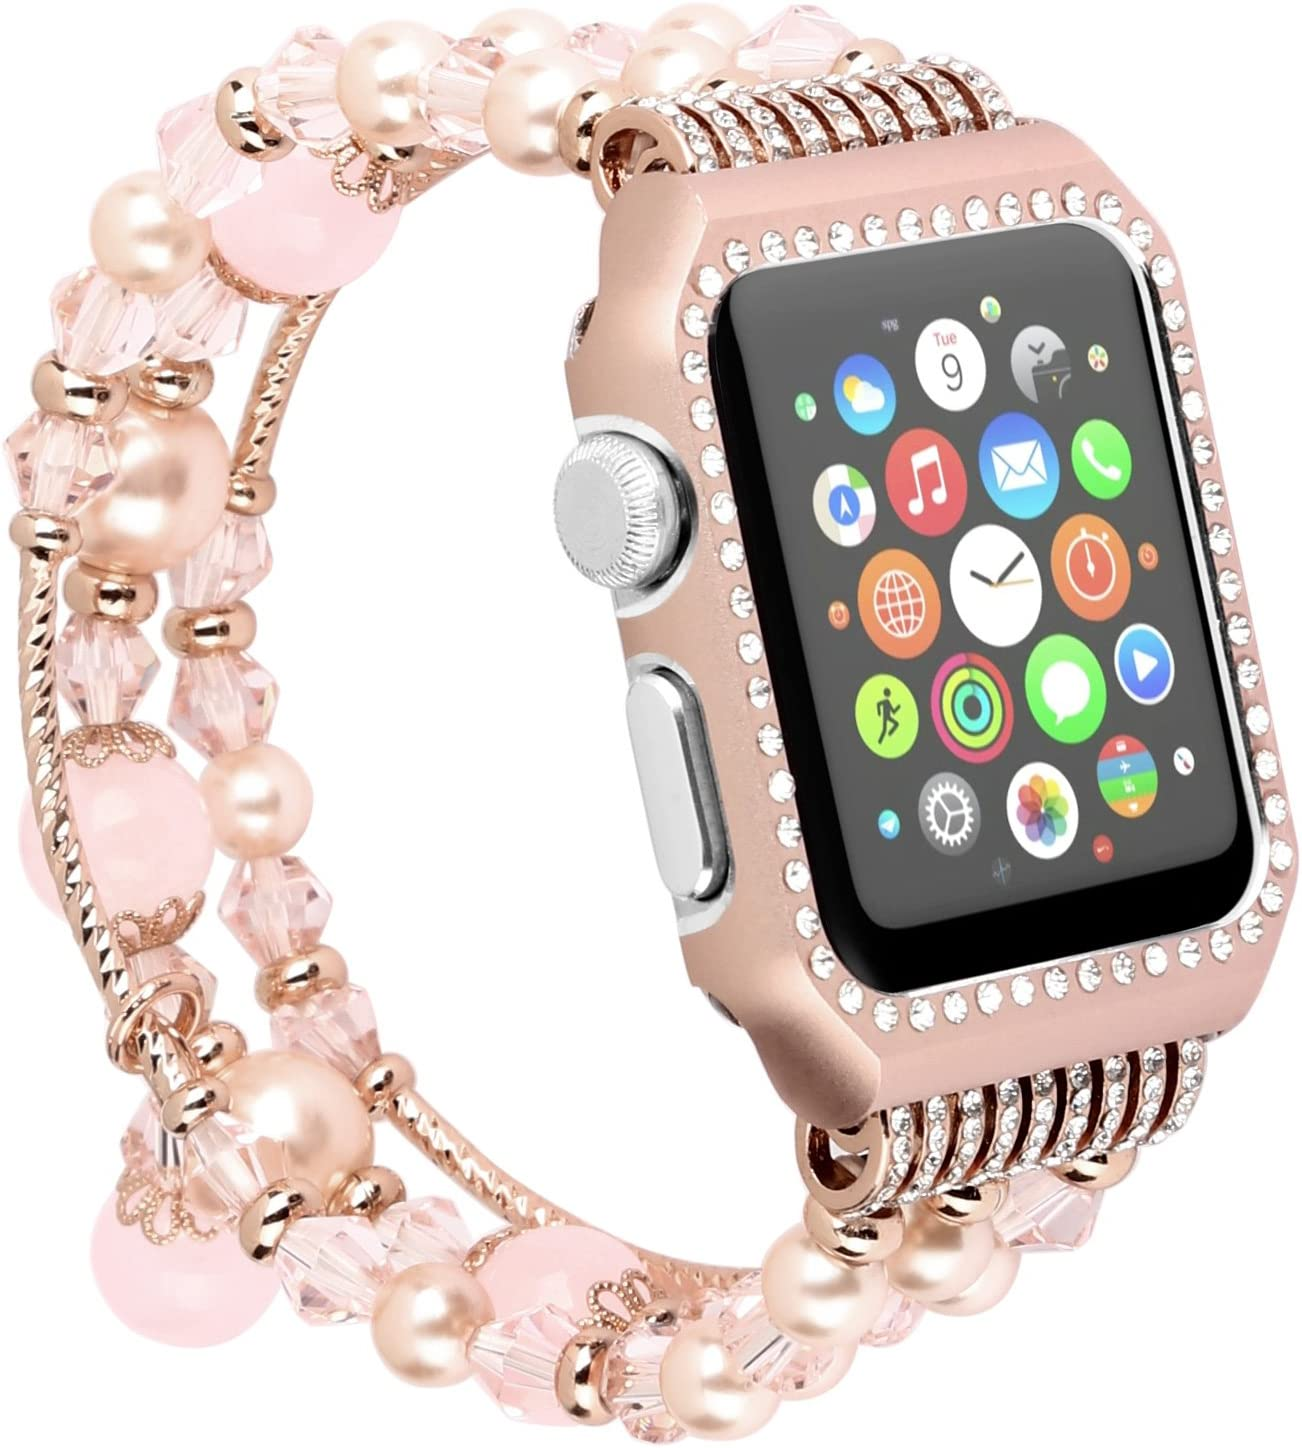 Amazon Com For Apple Watch Band Bracelet 42mm With Bling Rhinestone Metal Case Handmade Elastic Wrist Band Strip Replacement For Iwatch All Series 3 2 1 Rose Gold